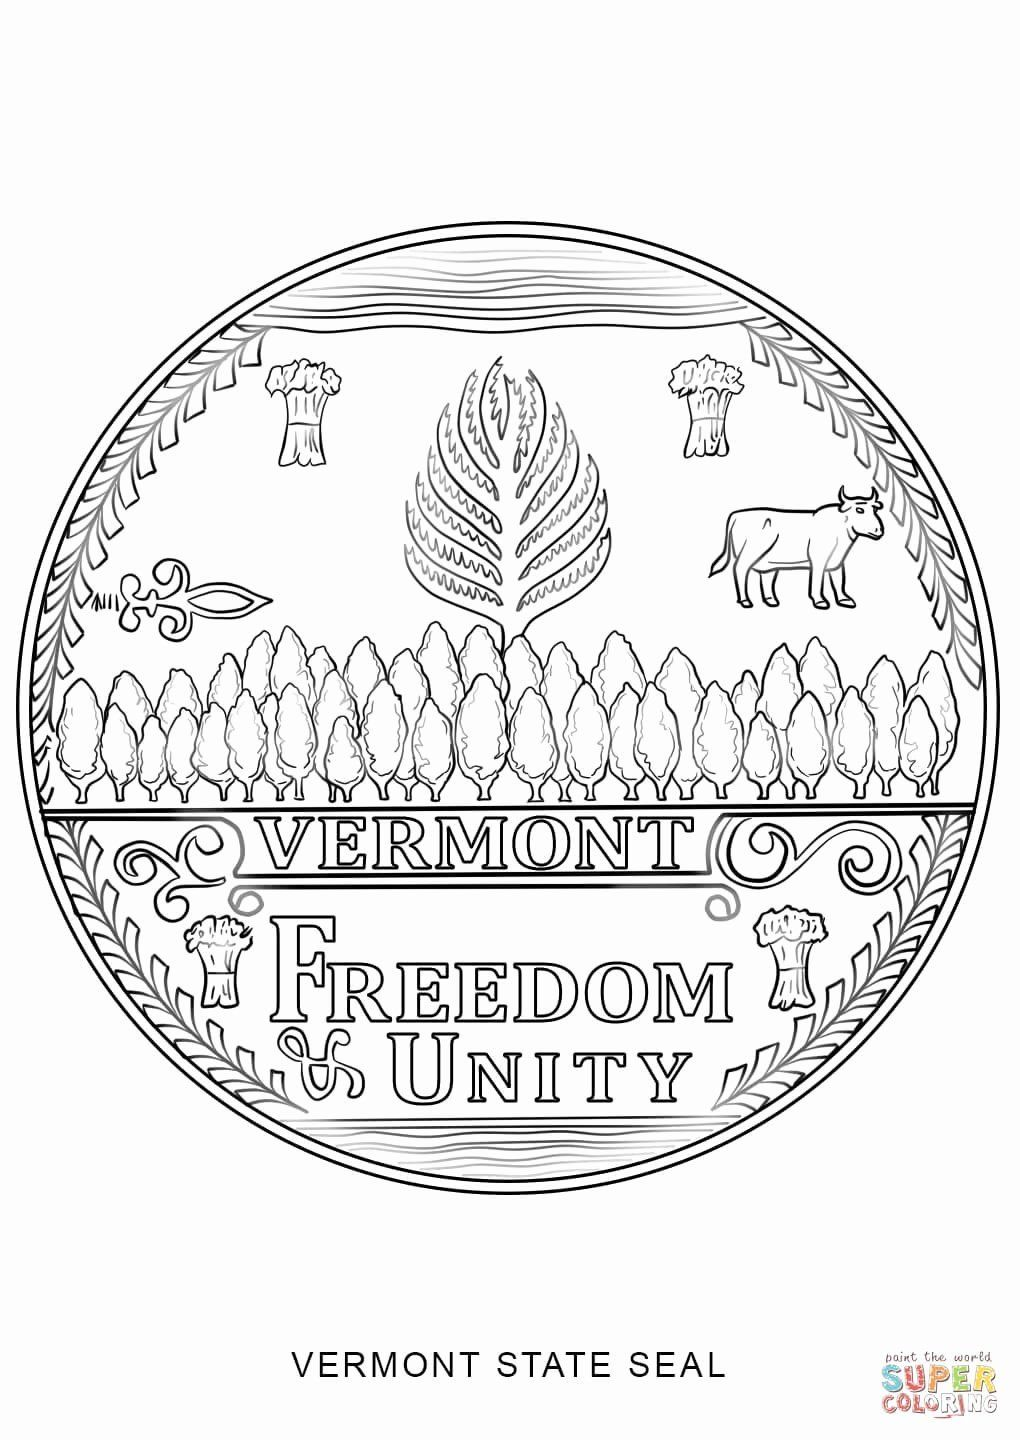 Montana State Flag Coloring Page Lovely Vermont State Seal